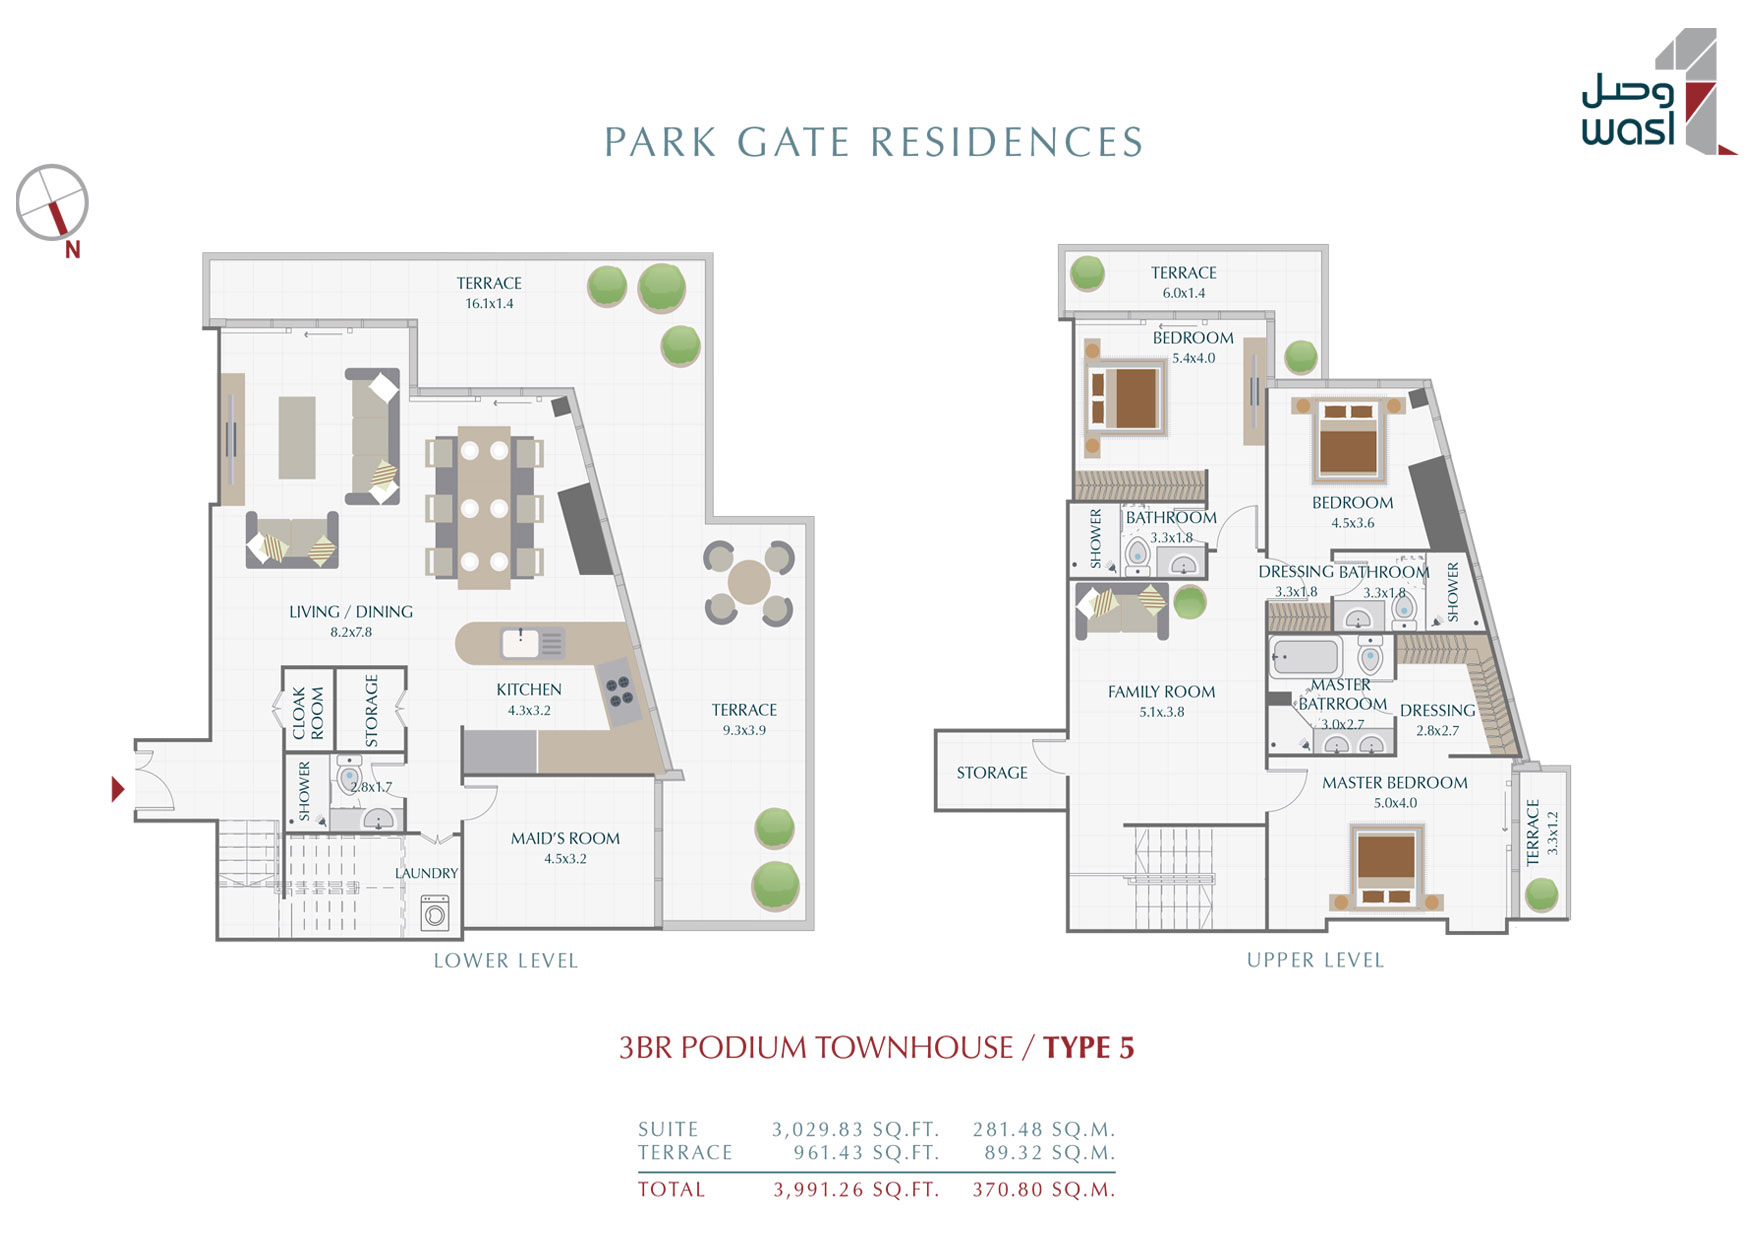 3BR-PodiumTownhouses, Type-5, Size-3991 sq.ft